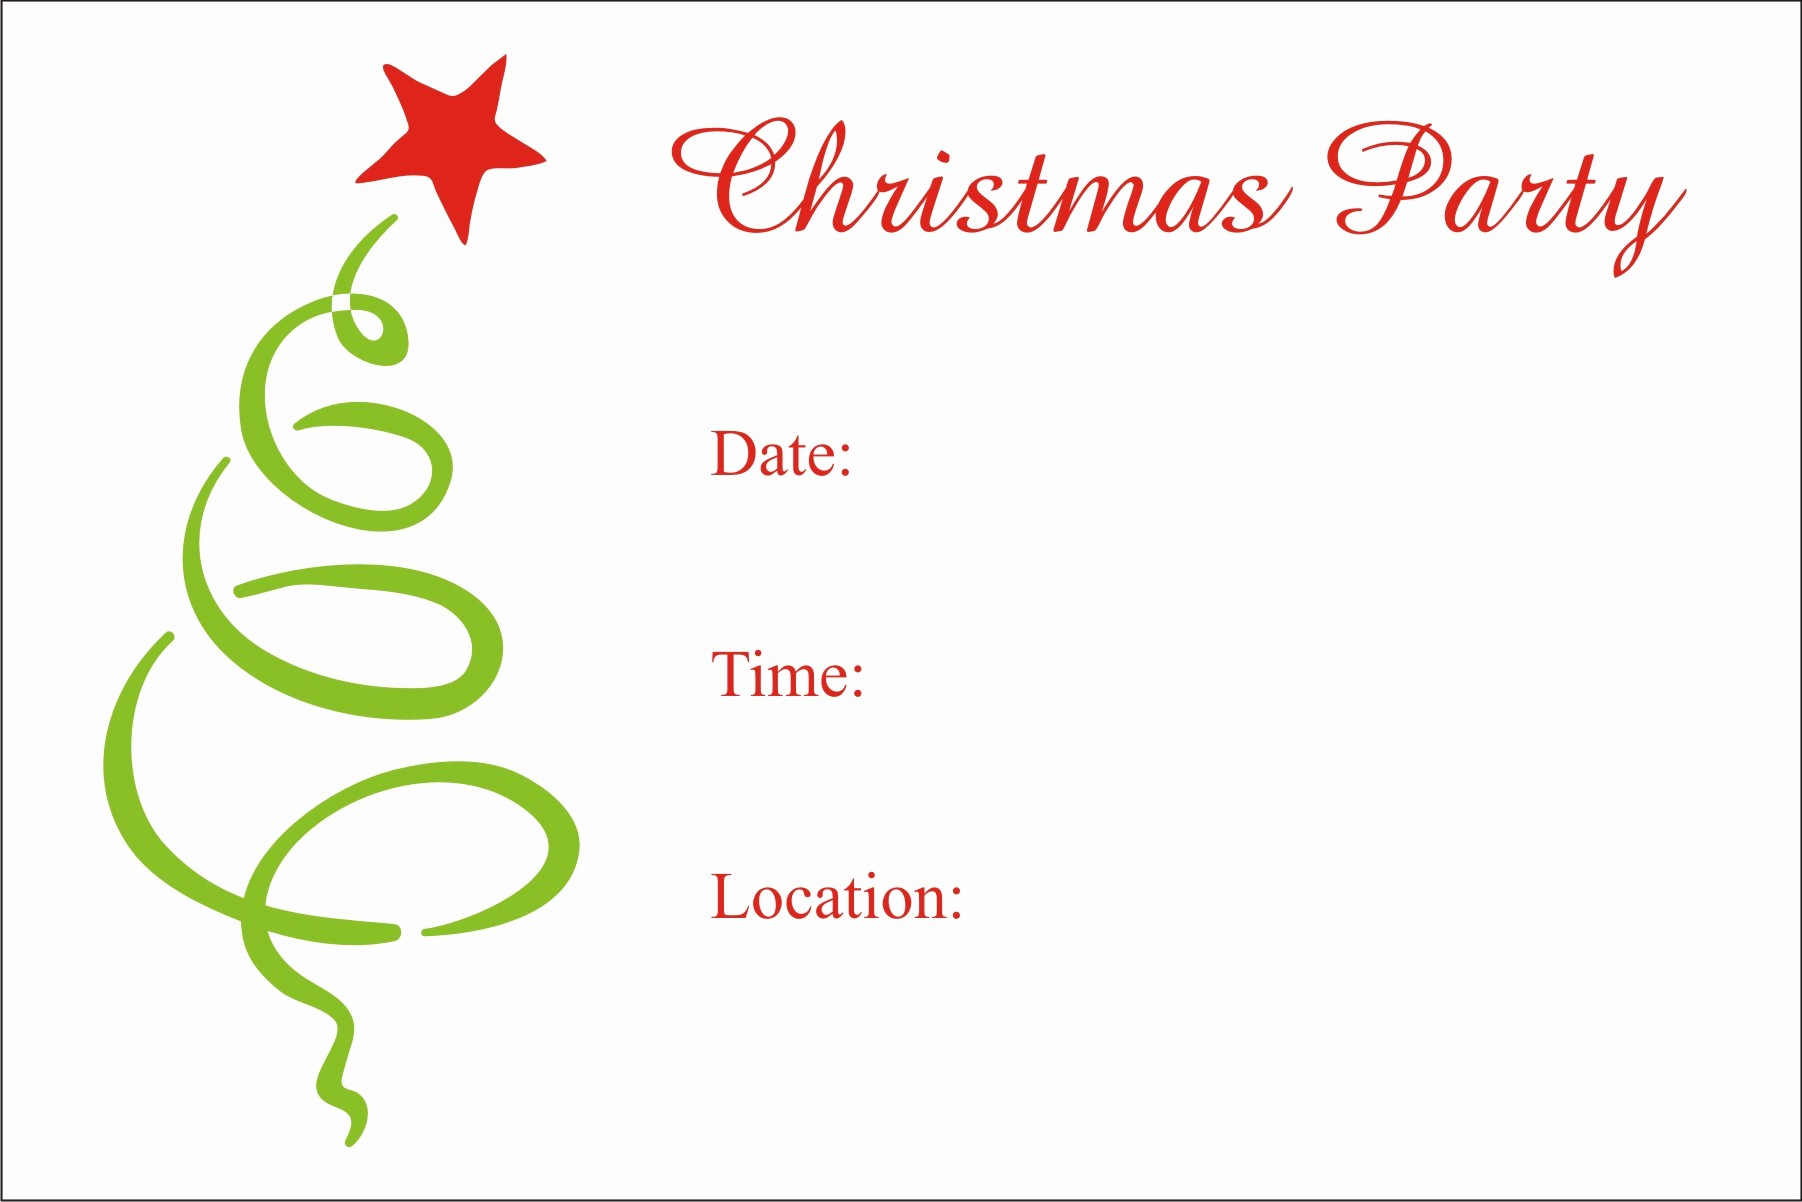 Christmas Party Invite Free Template Fresh Christmas Party Free Printable Holiday Invitation